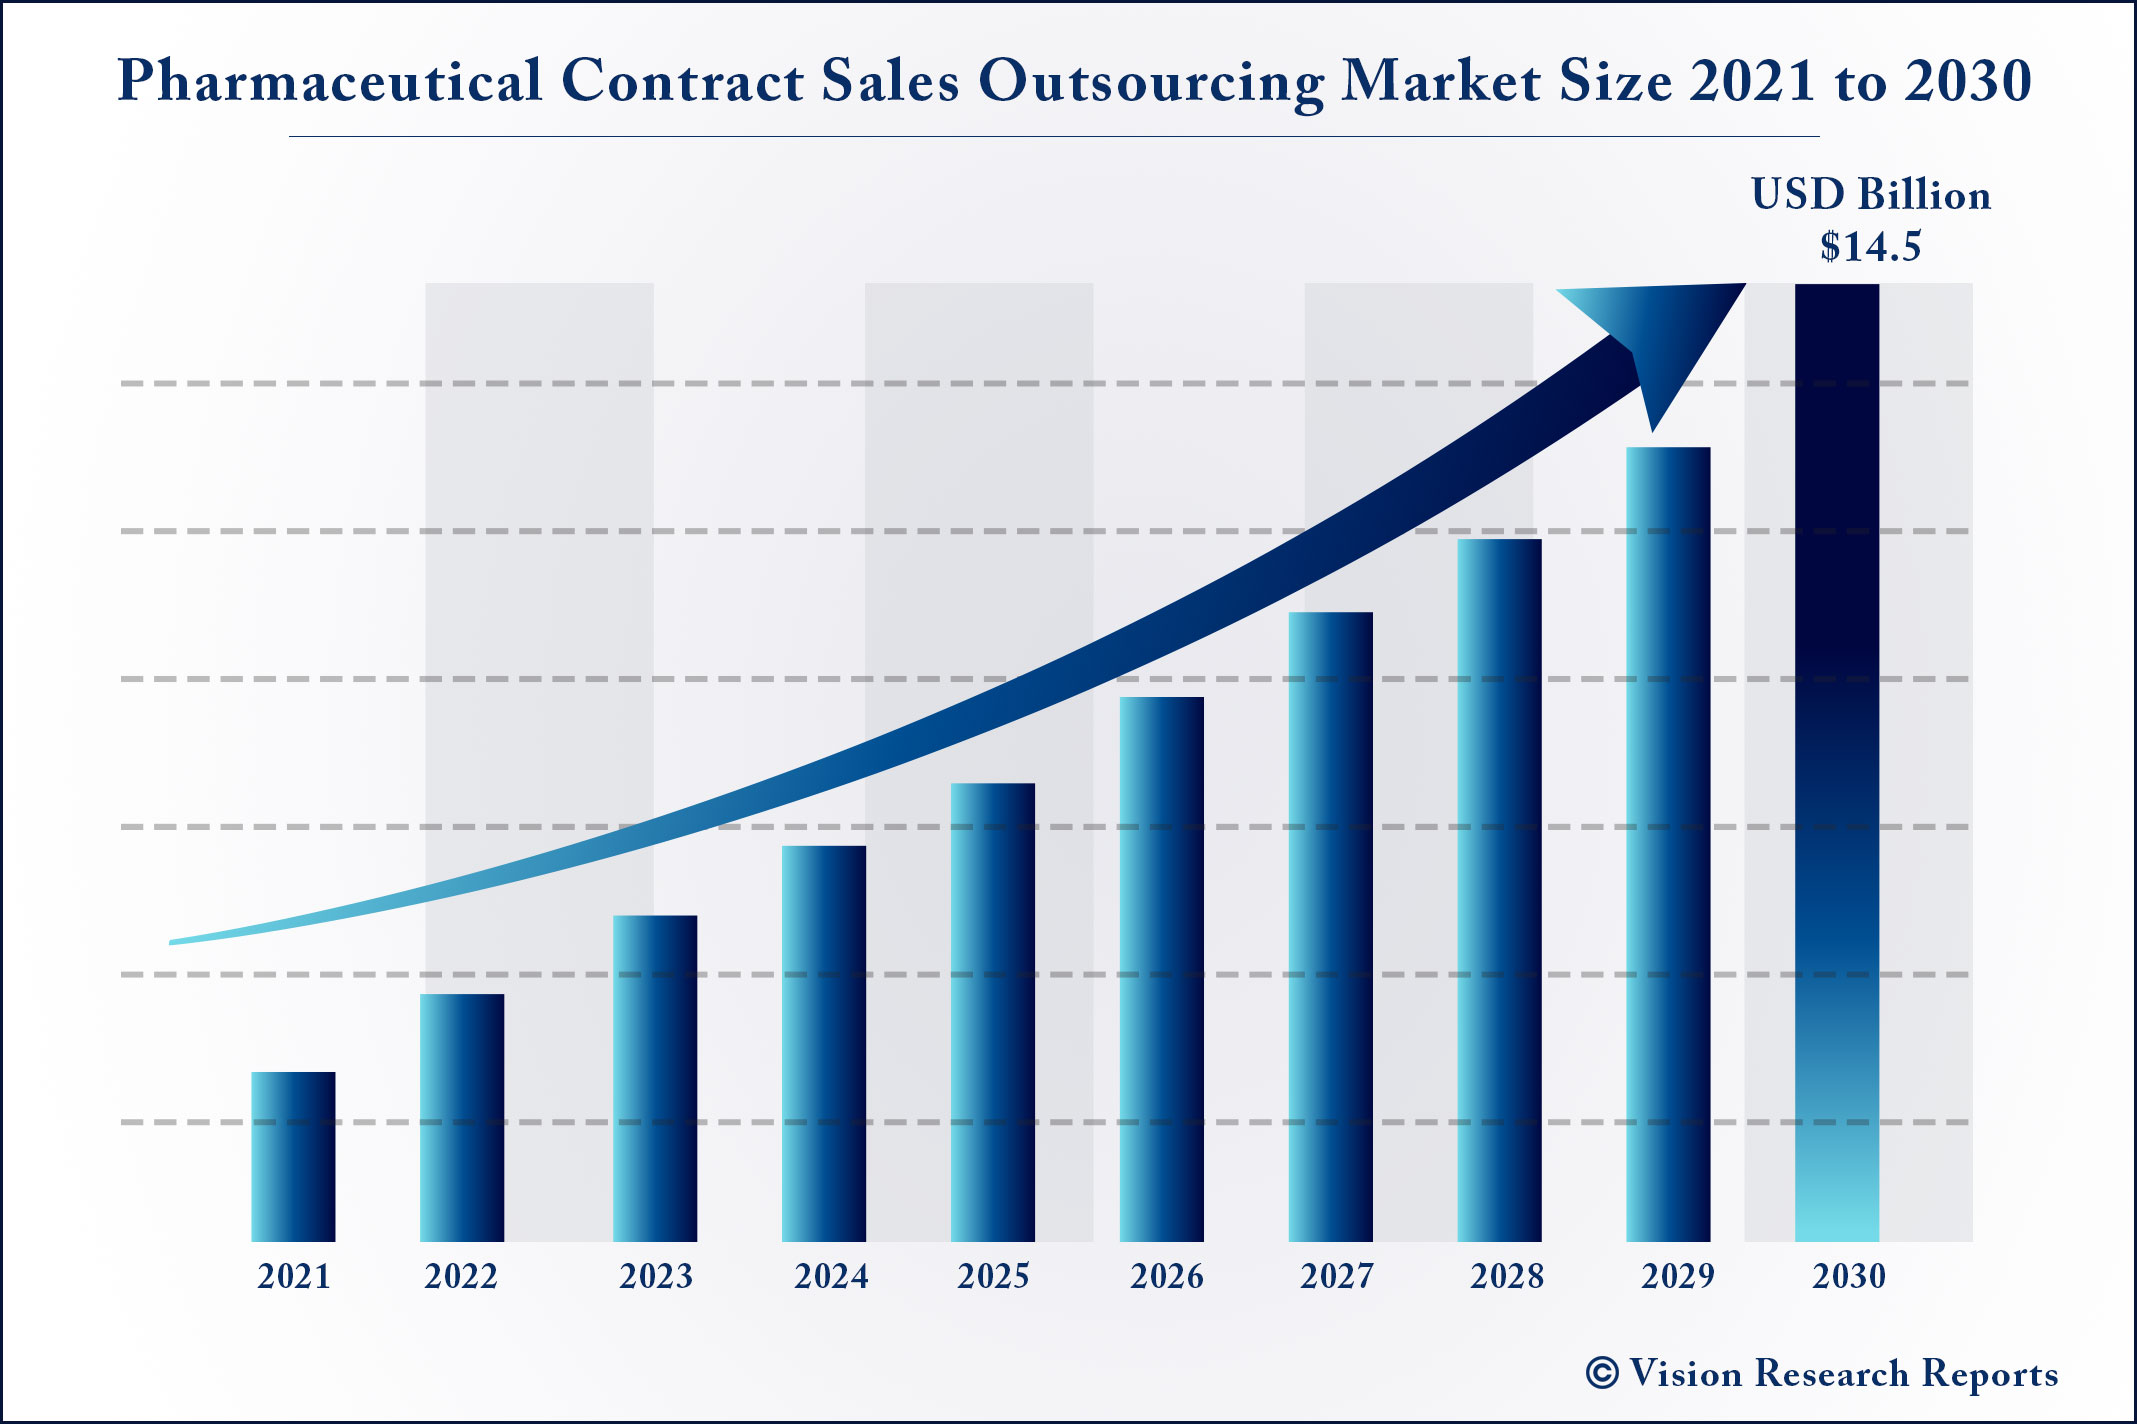 Pharmaceutical Contract Sales Outsourcing Market Size 2021 to 2030